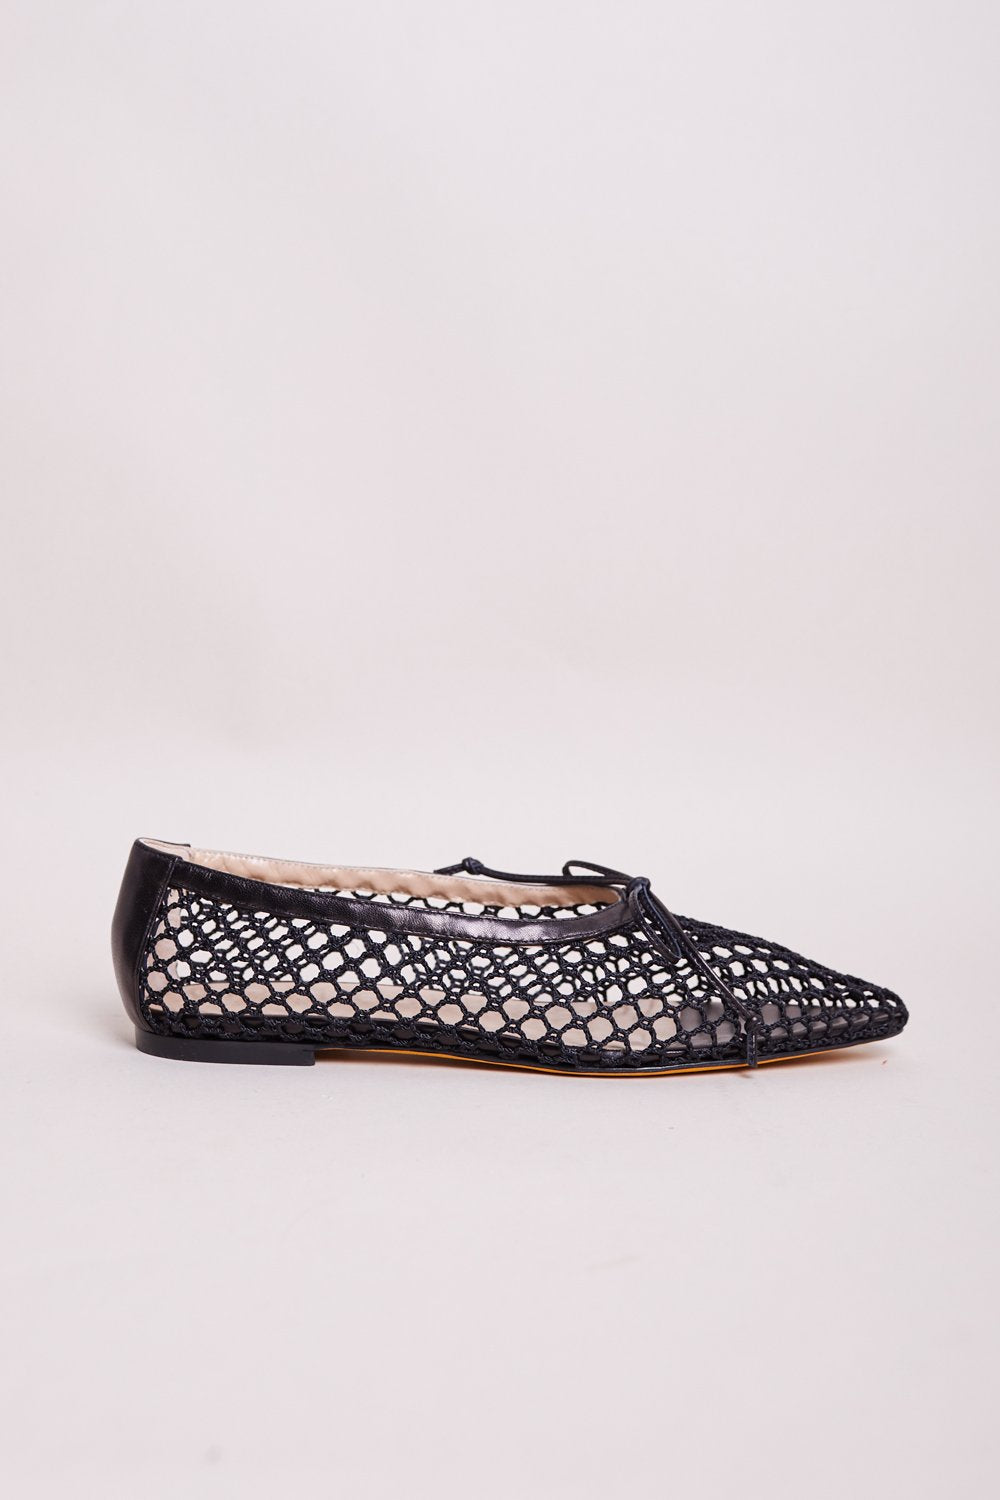 Patio loafer in Black